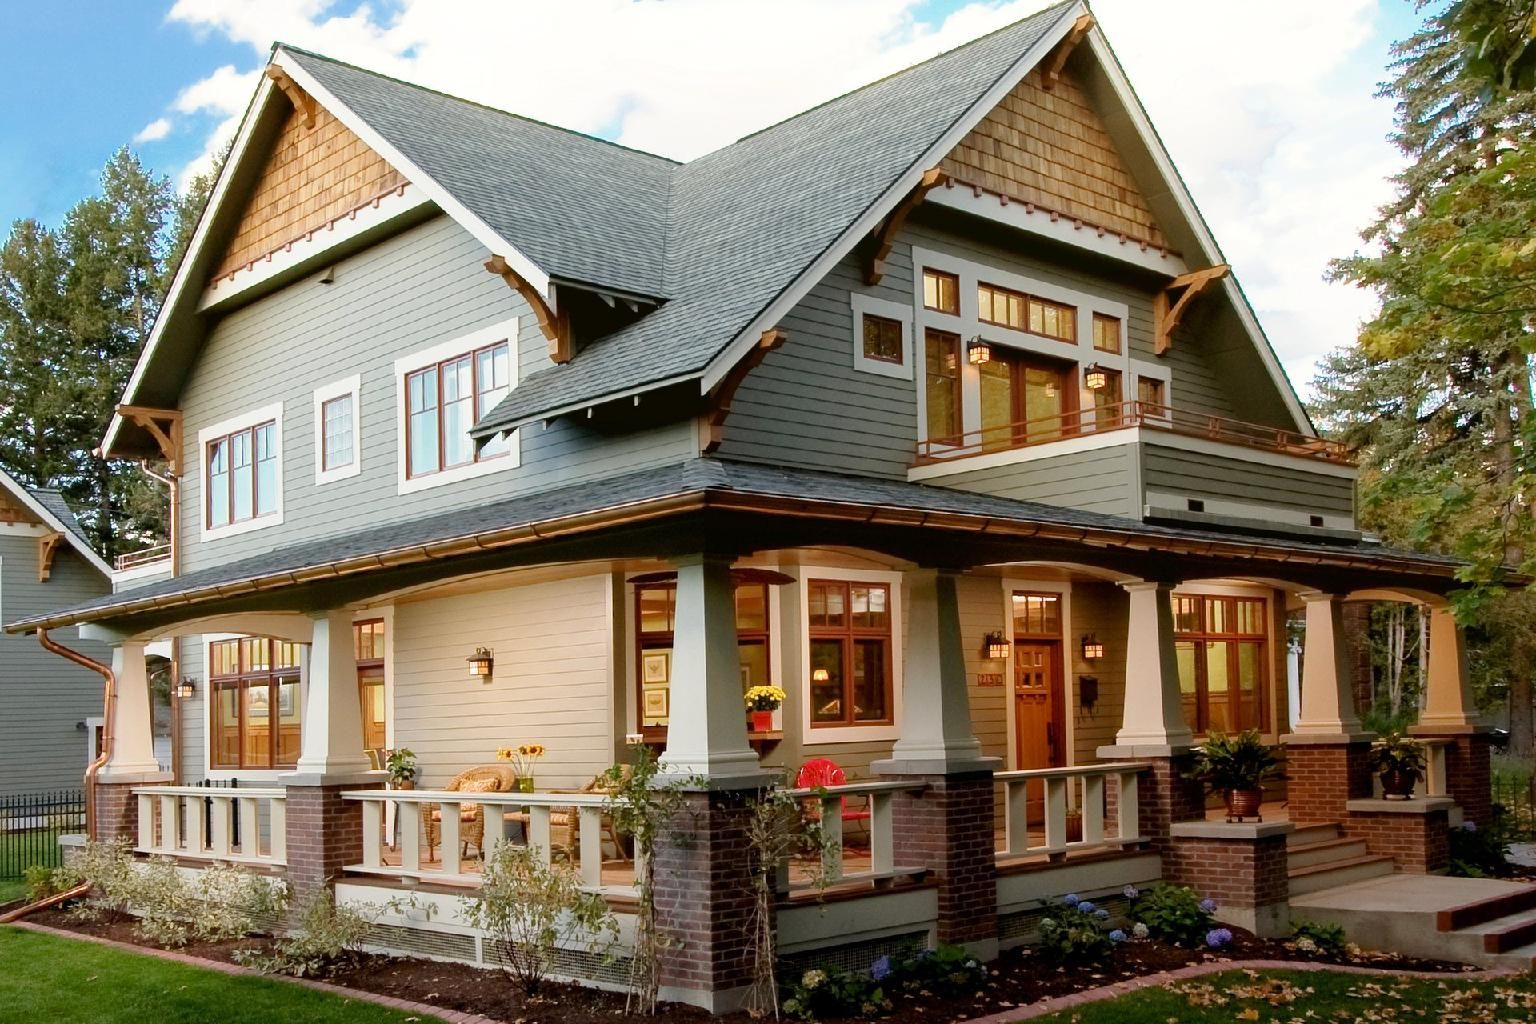 Details Details Craftsman Home Exterior Craftsman Style House Plans Craftsman Style Homes